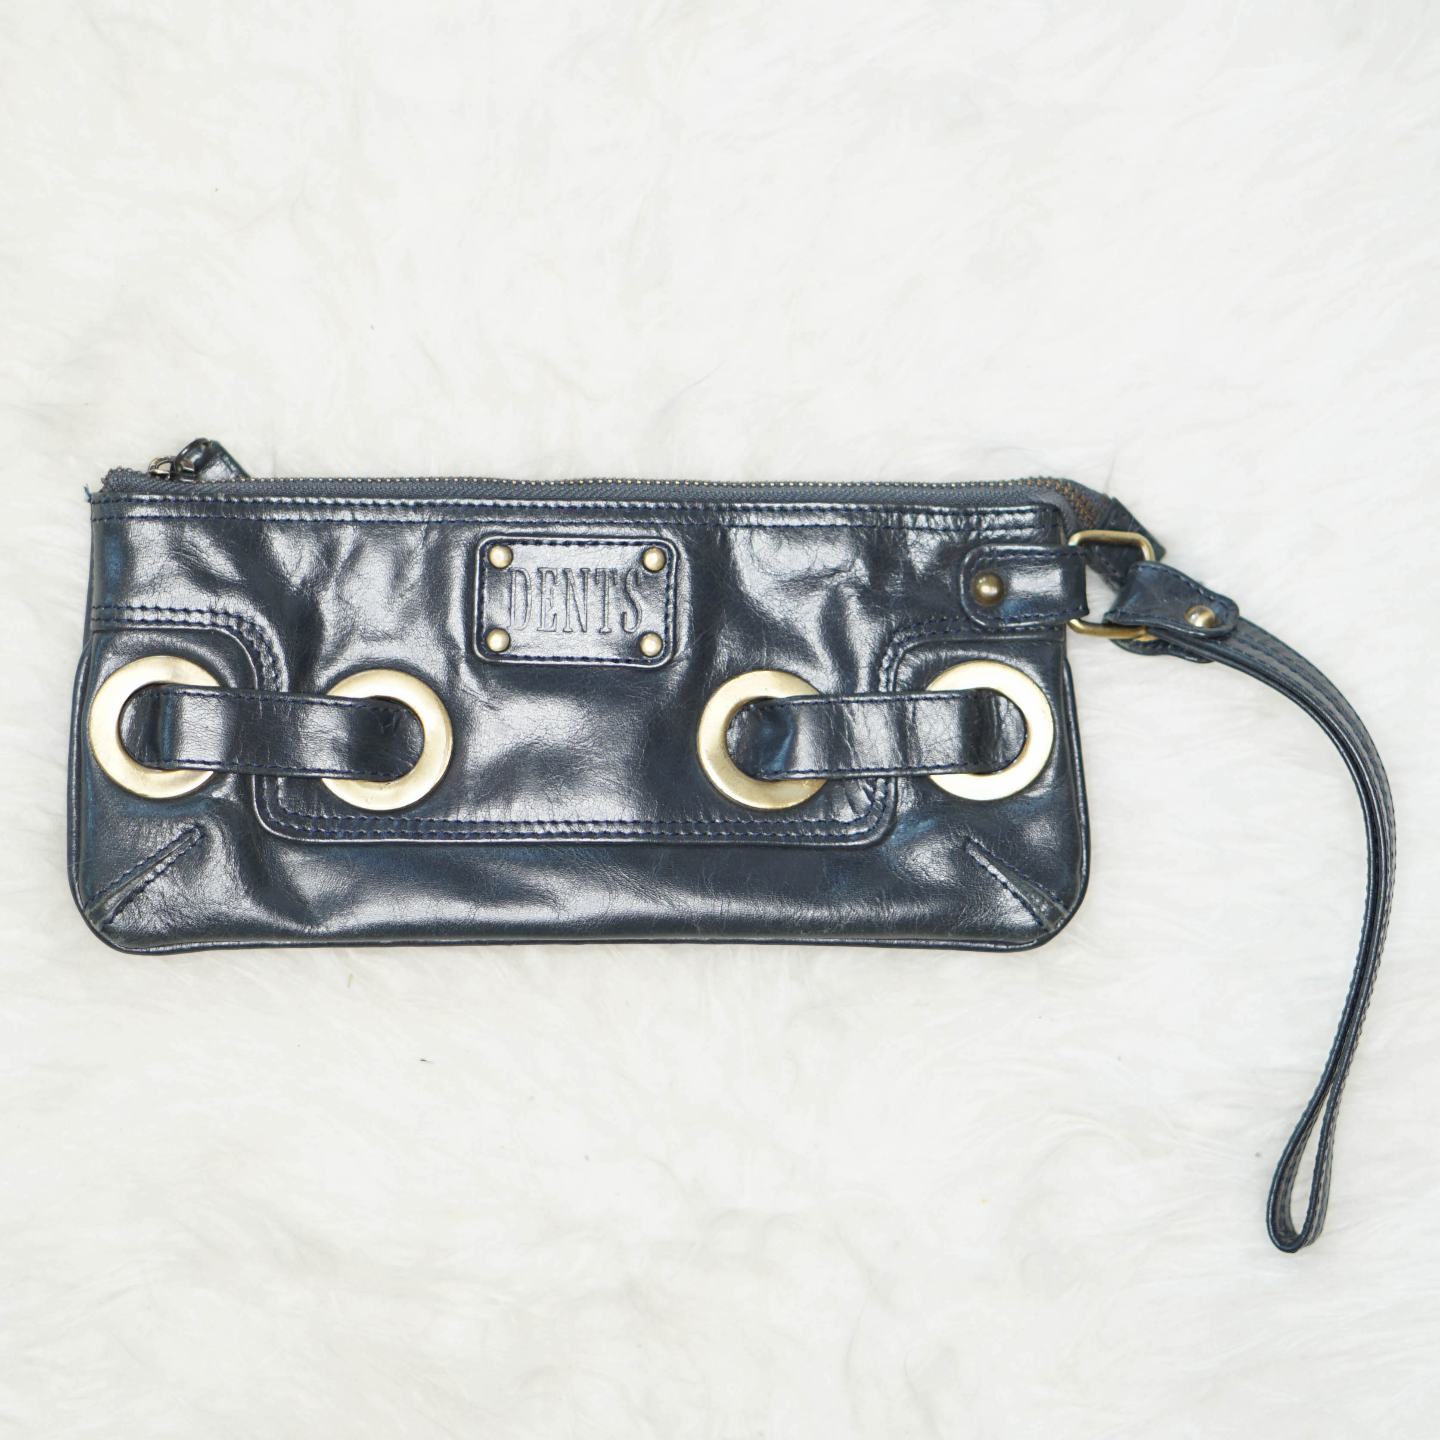 Vintage DENTS Navy Wristlet Clutch